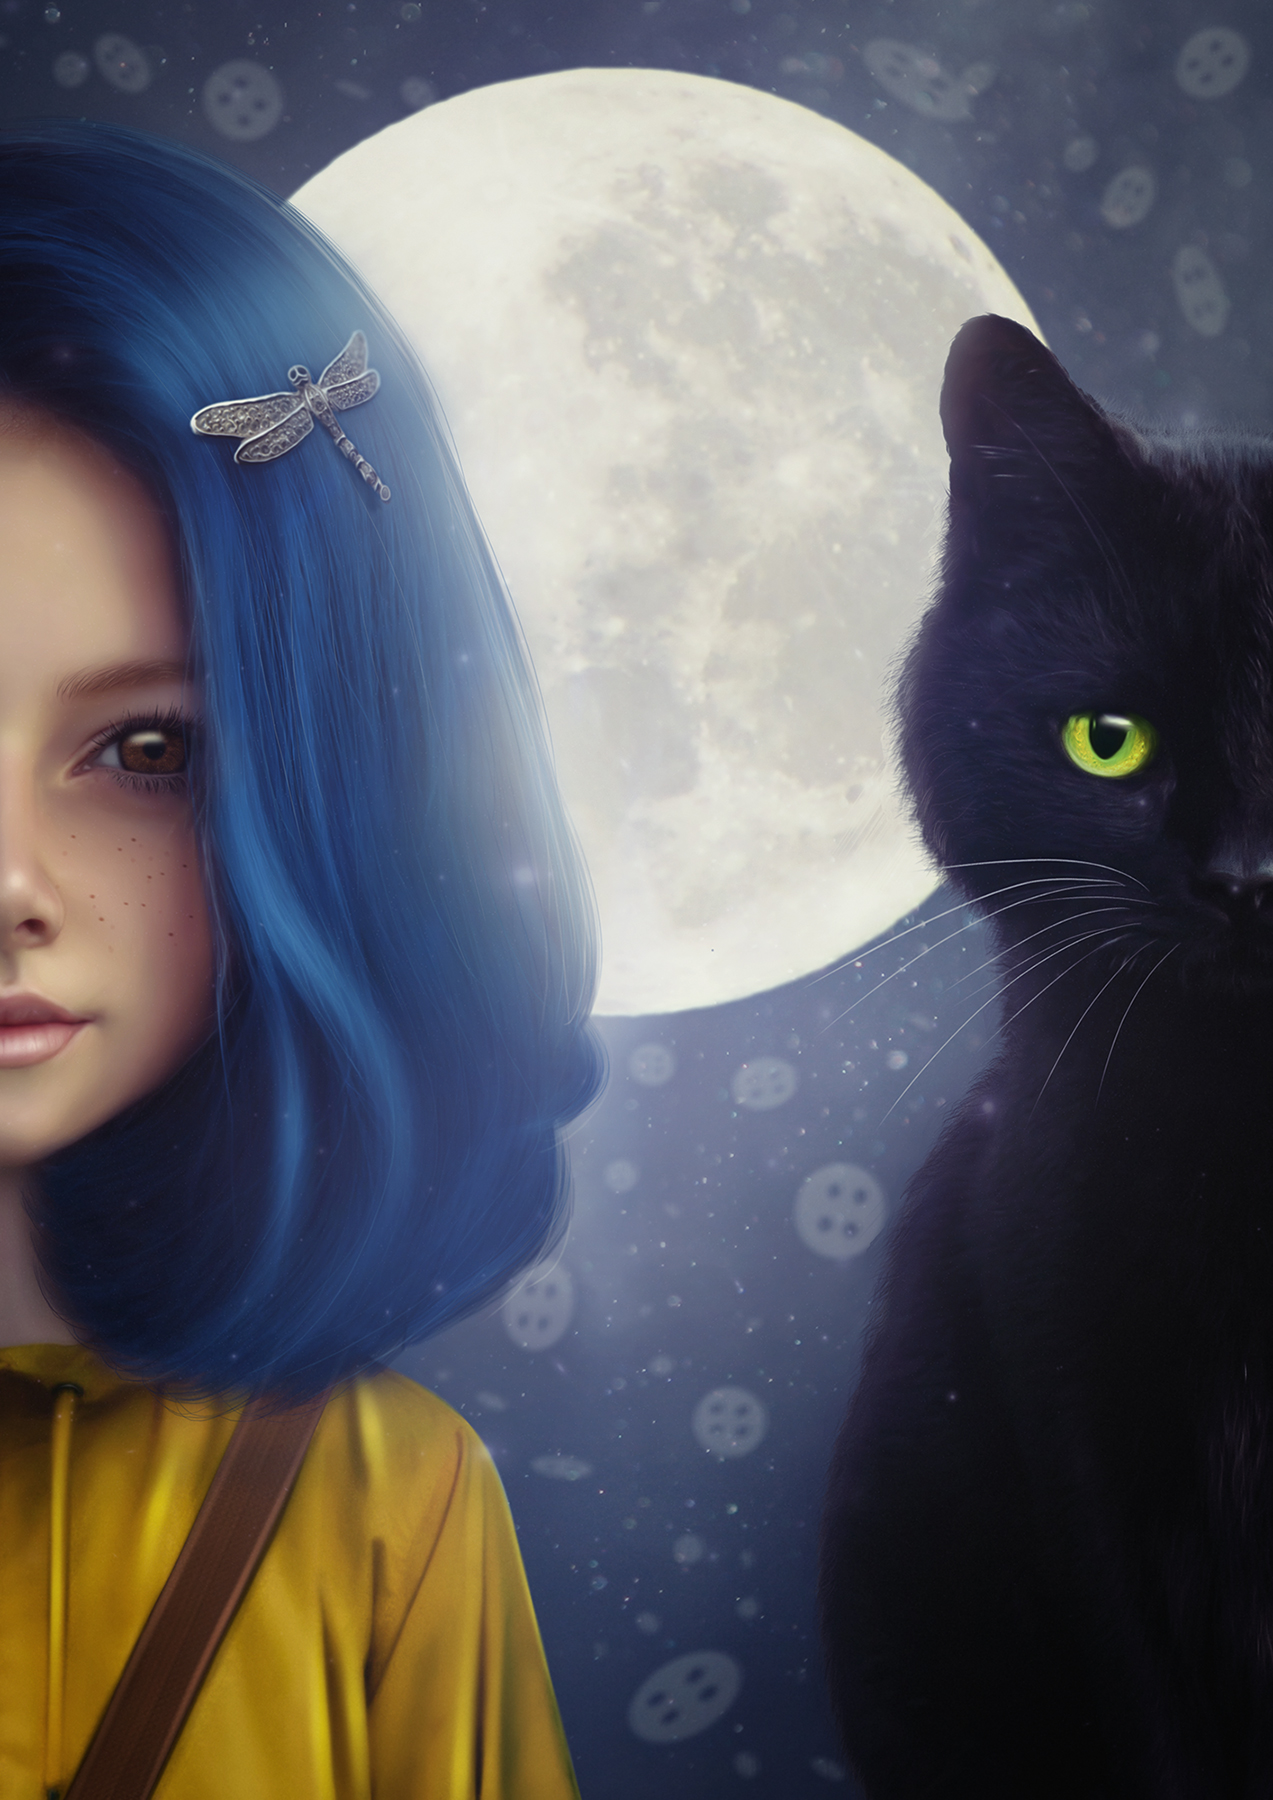 Coraline and cat